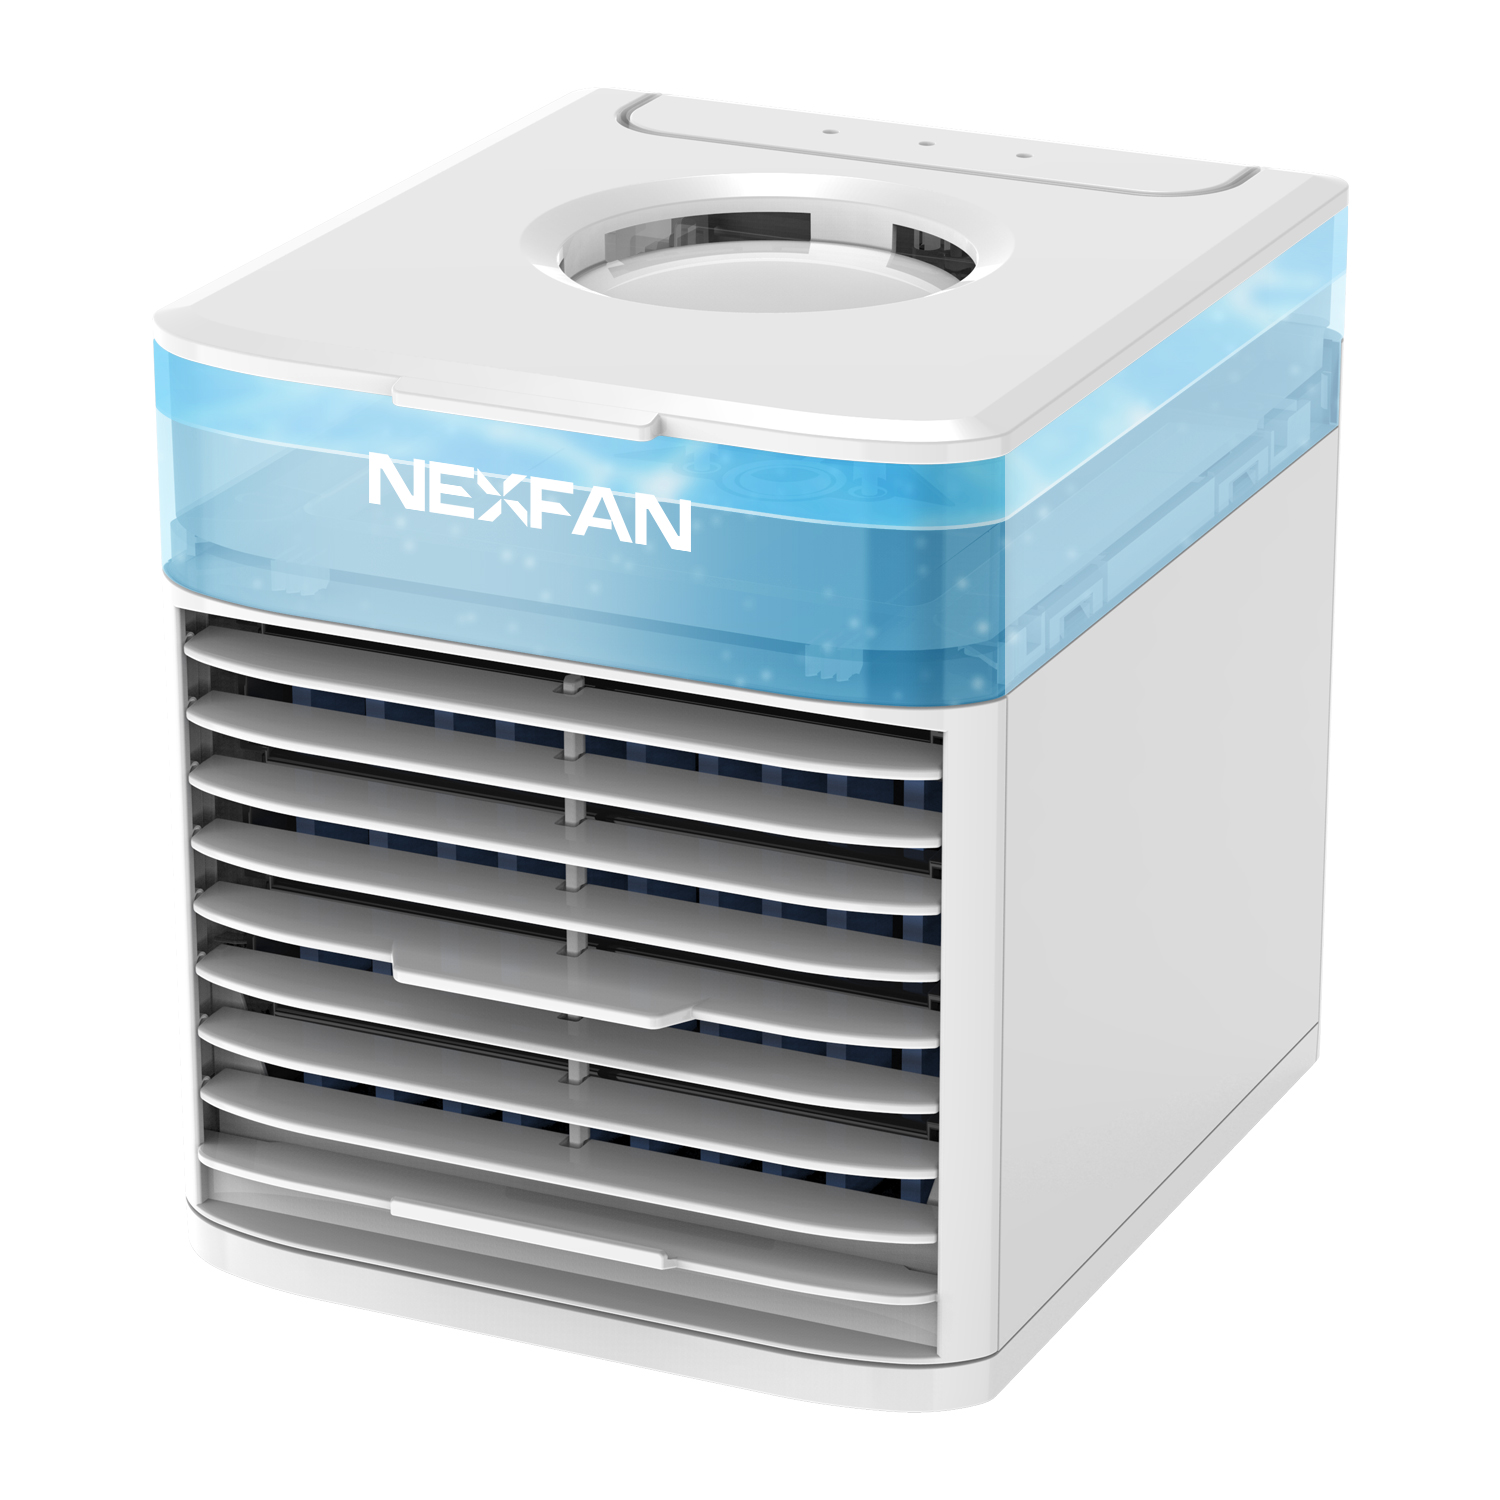 2020 new nexfan ultra air cooler for room and office upgrade portable <strong>AC</strong> for outdoor 7 LED lights